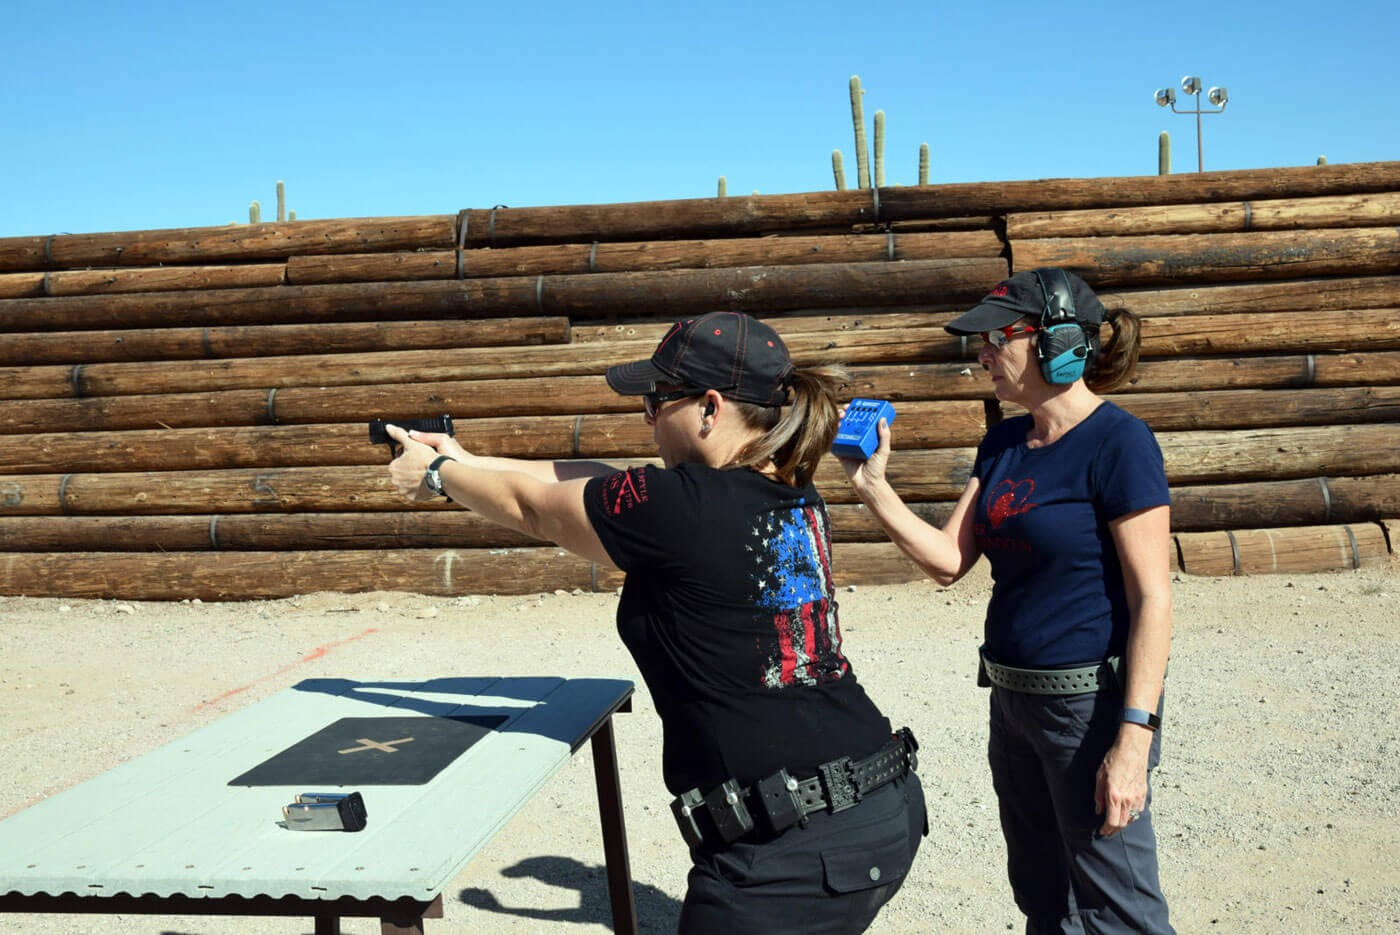 Women in competition shooting